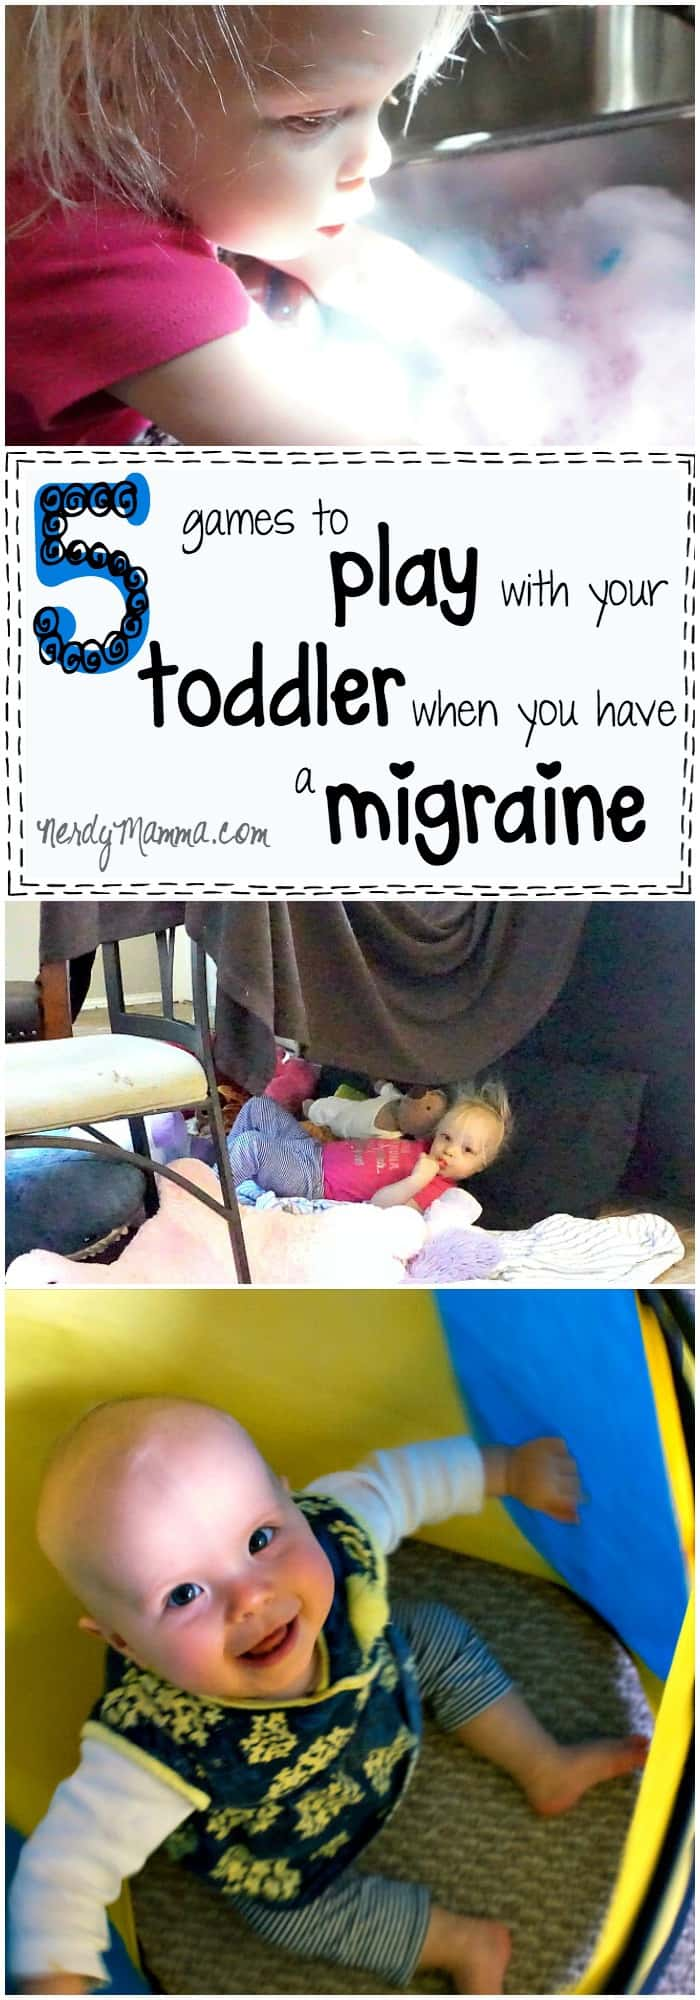 I love these ideas for playing with your toddler when you've got a migraine! Such fun when you feel like poo...LOL!